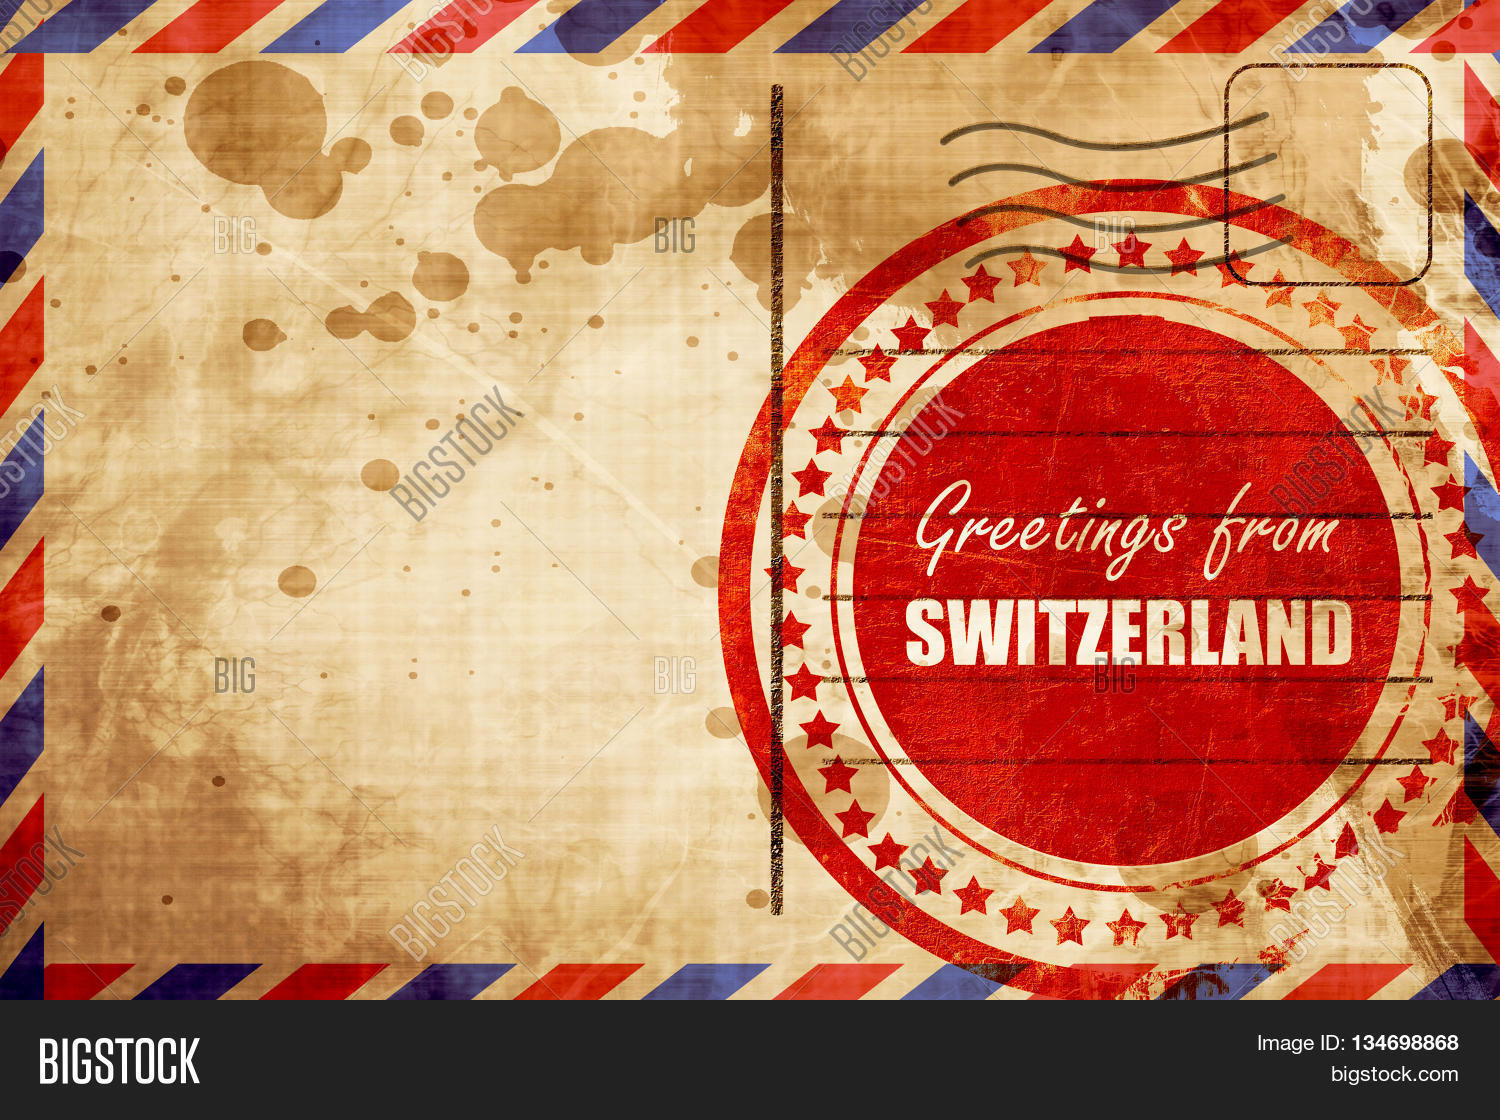 Greetings switzerland image photo free trial bigstock greetings from switzerland red grunge stamp on an airmail backg m4hsunfo